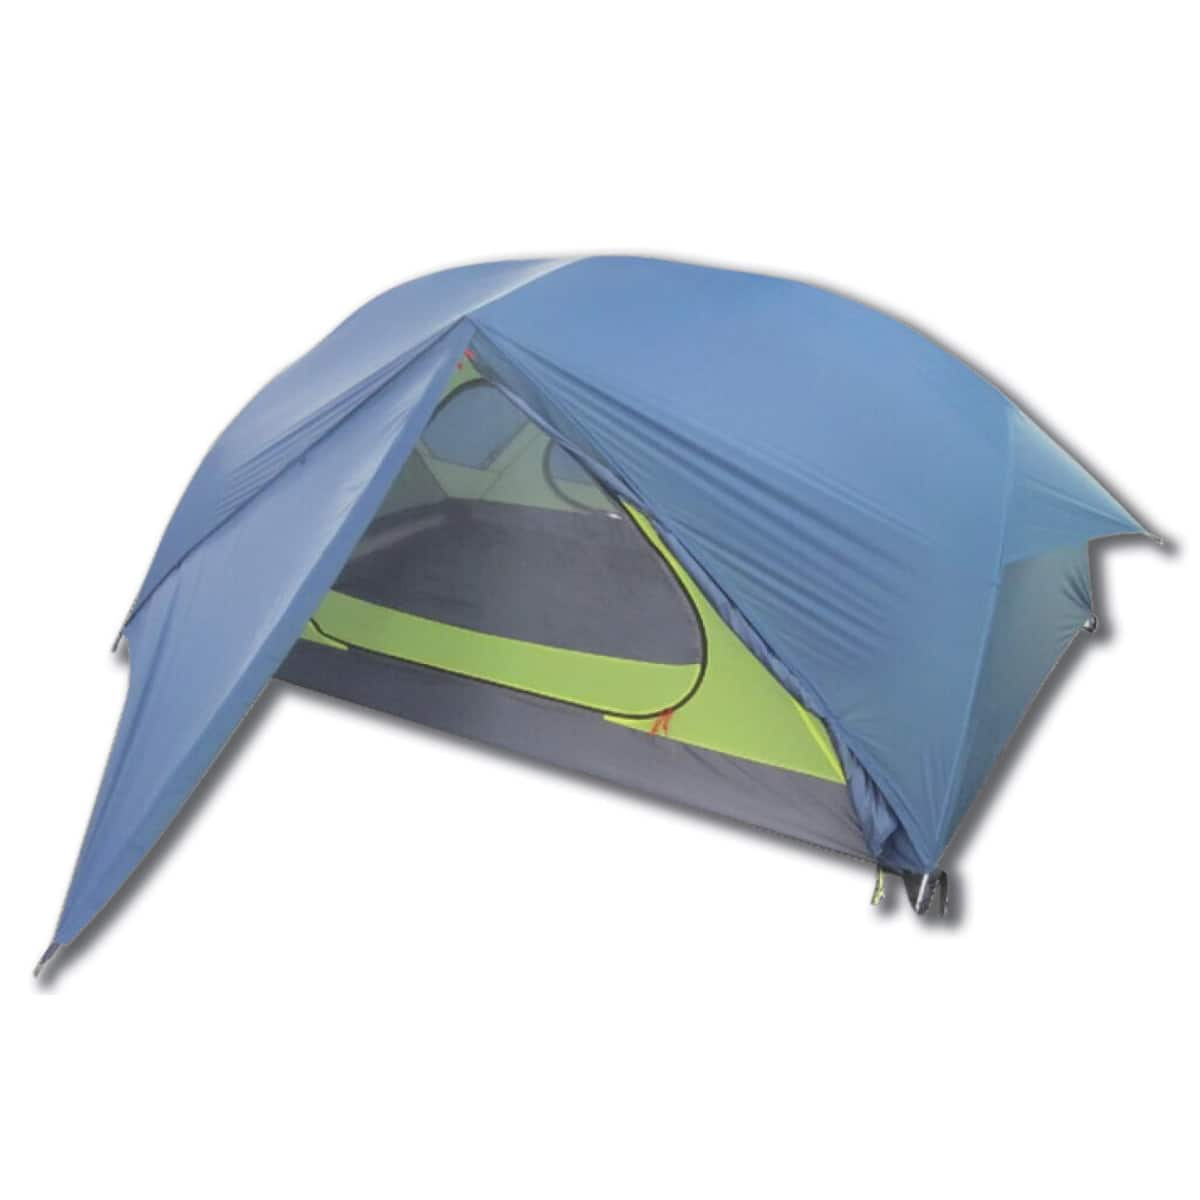 Vostok 2-Person Lightweight Backpacking Tent $39 + Free Shipping